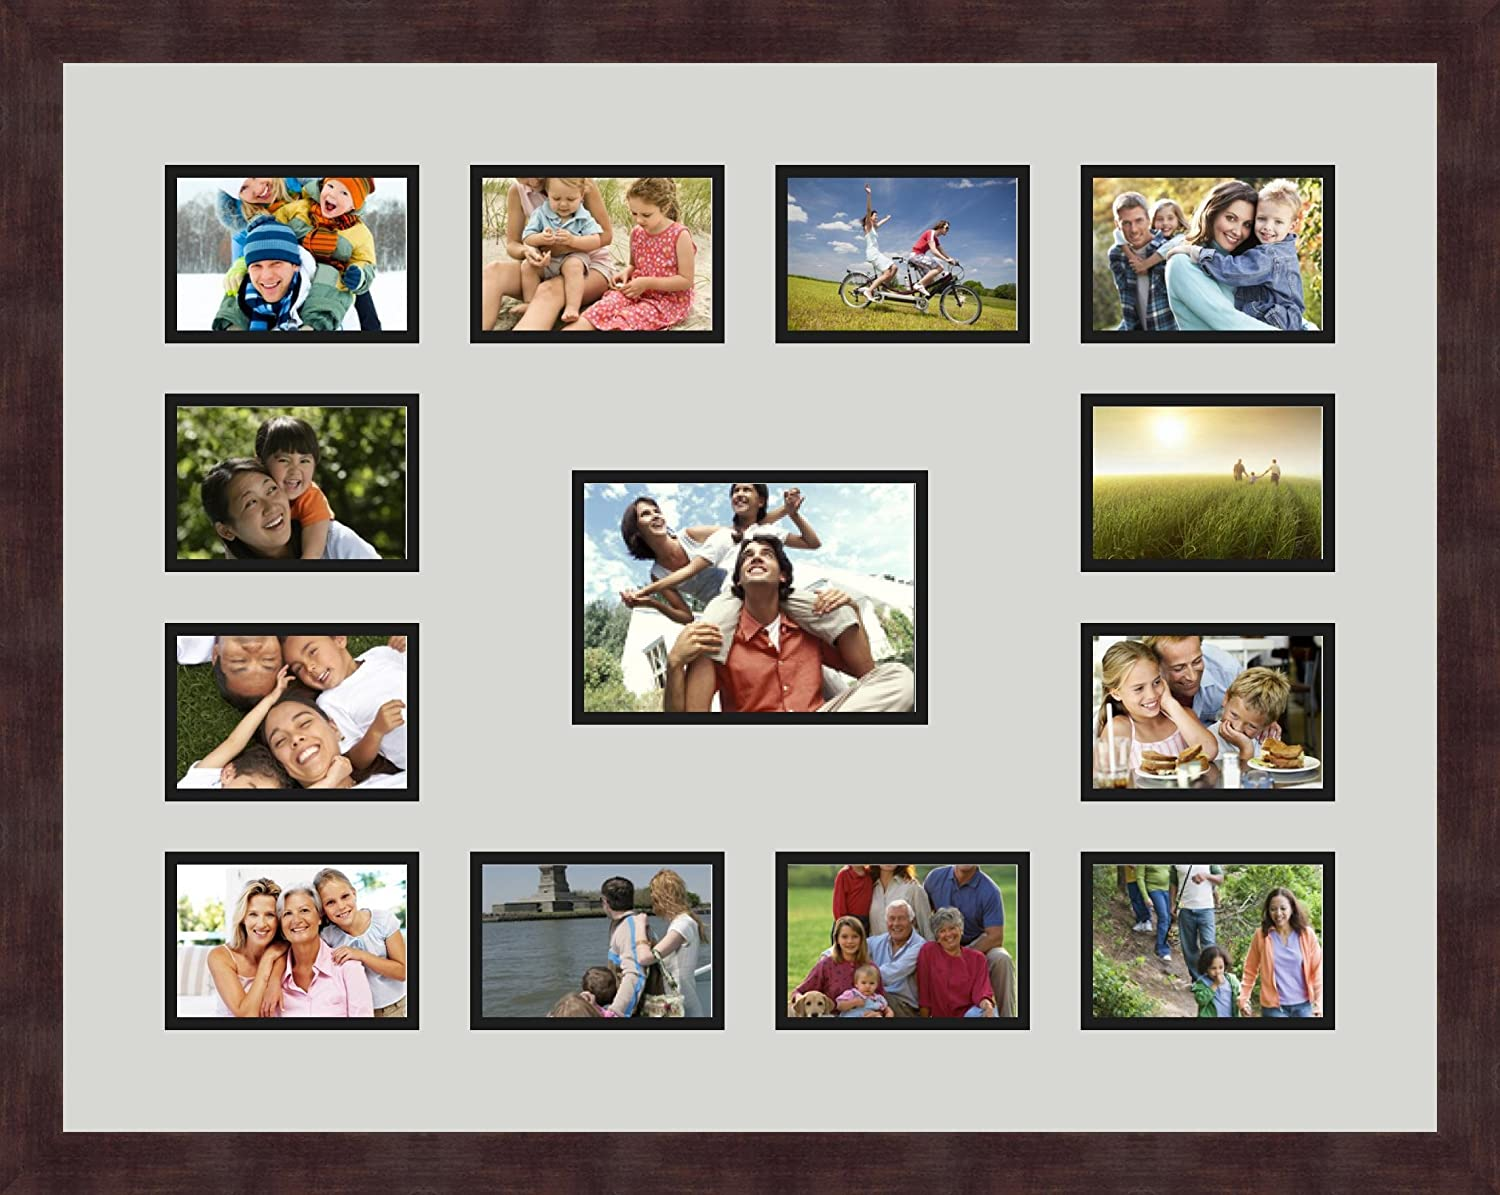 Art to Frames Double-Multimat-612-716//89-FRBW26061 Collage Frame Photo Mat Double Mat with 12-3.5x5 and 1-5x7 Openings and Espresso Frame